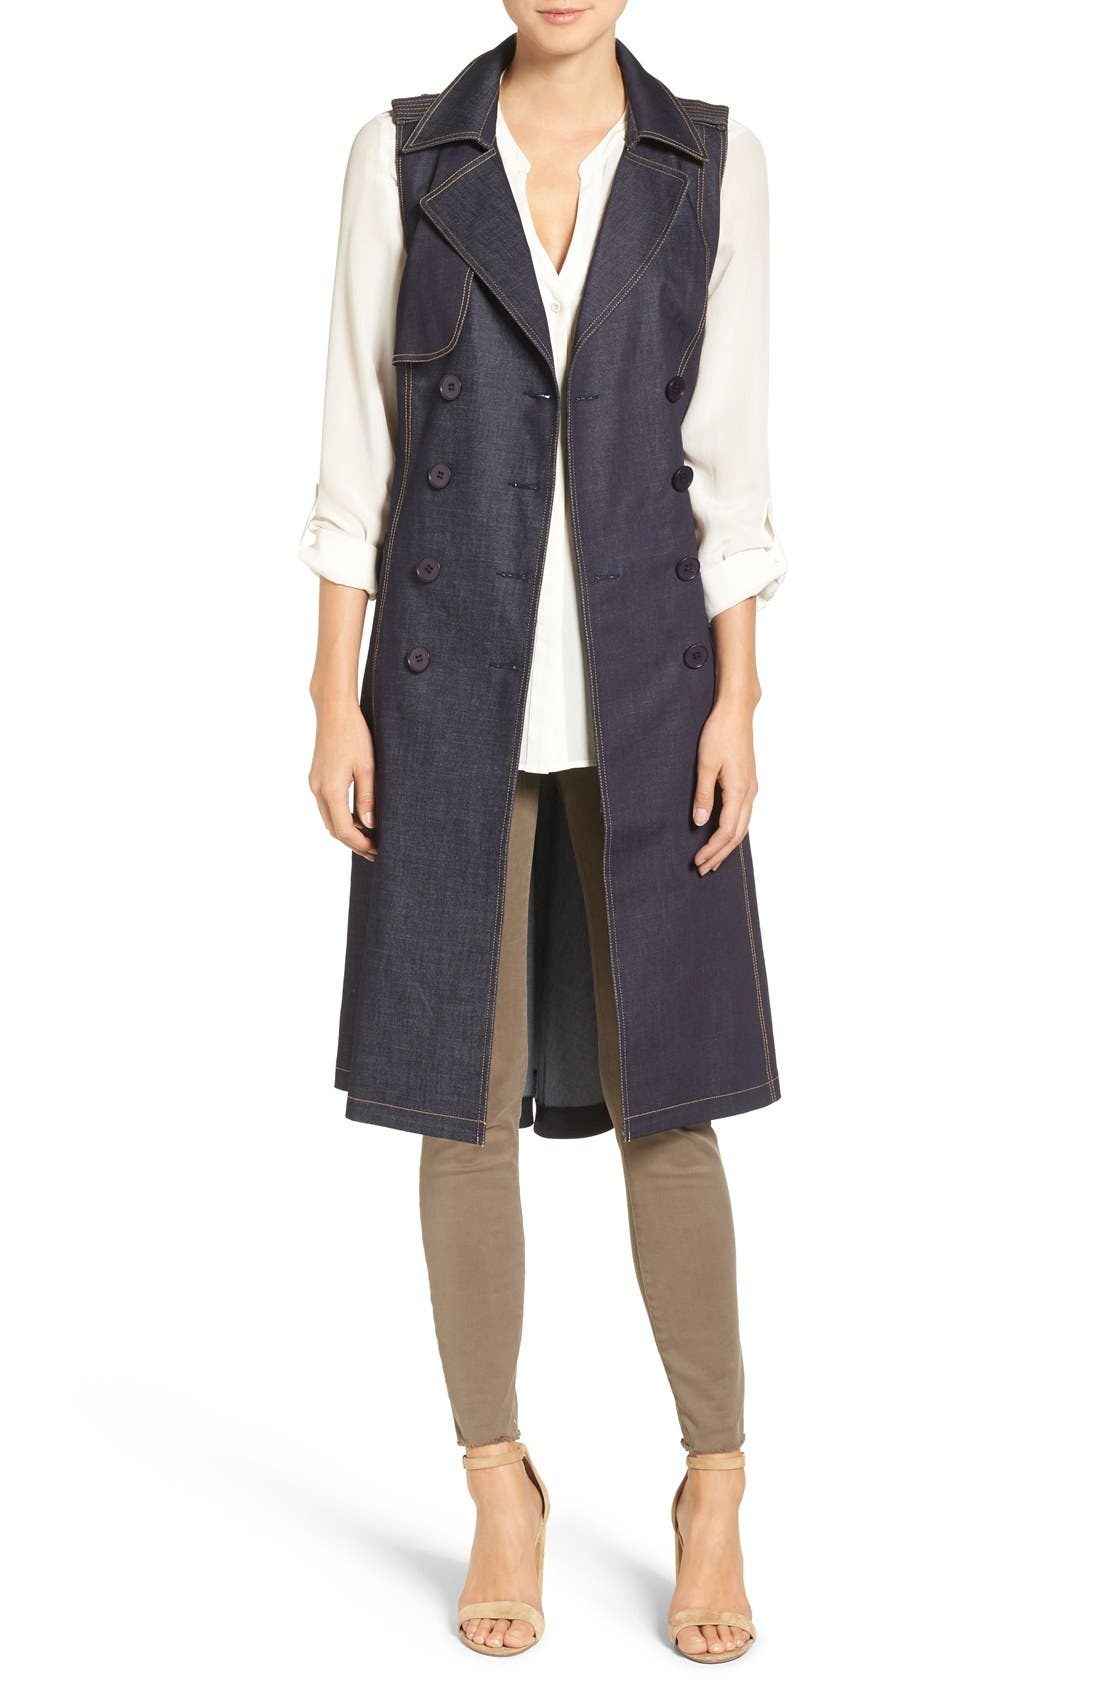 CHELSEA28 Sleeveless Denim Trench Coat